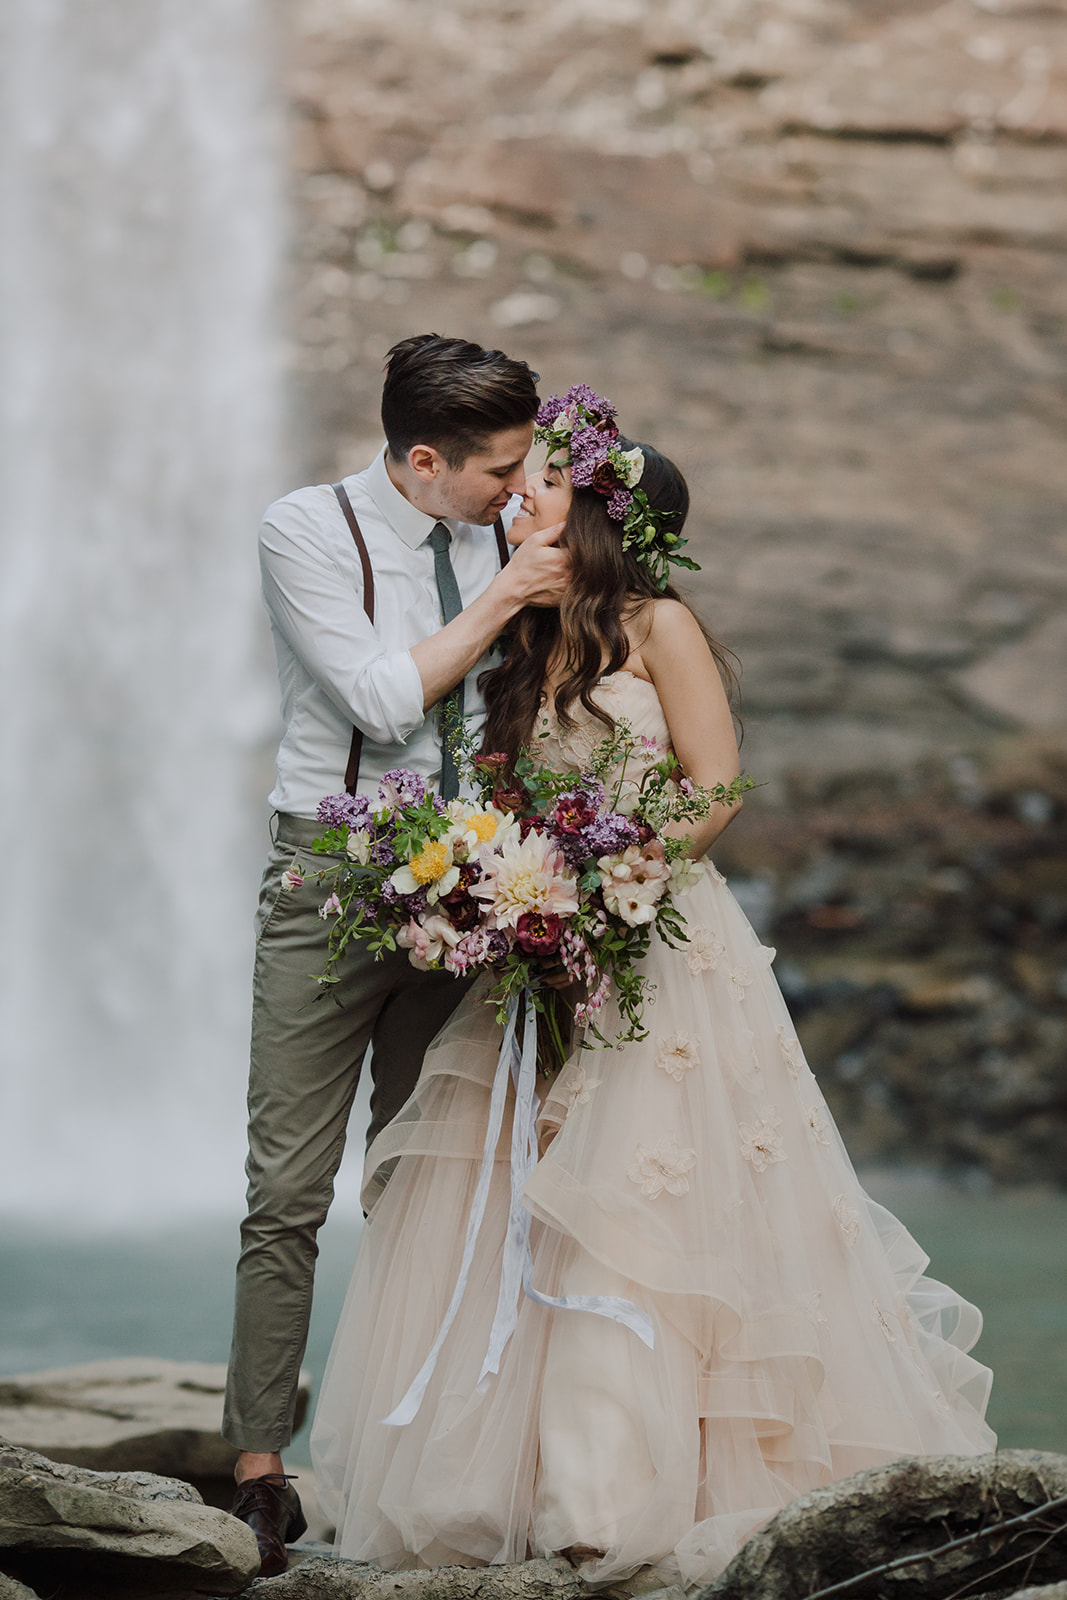 Natural, trailing bridal bouquet and flower crown with a blush wedding dress // Middle TN Waterfall Vow Renewal Floral Design